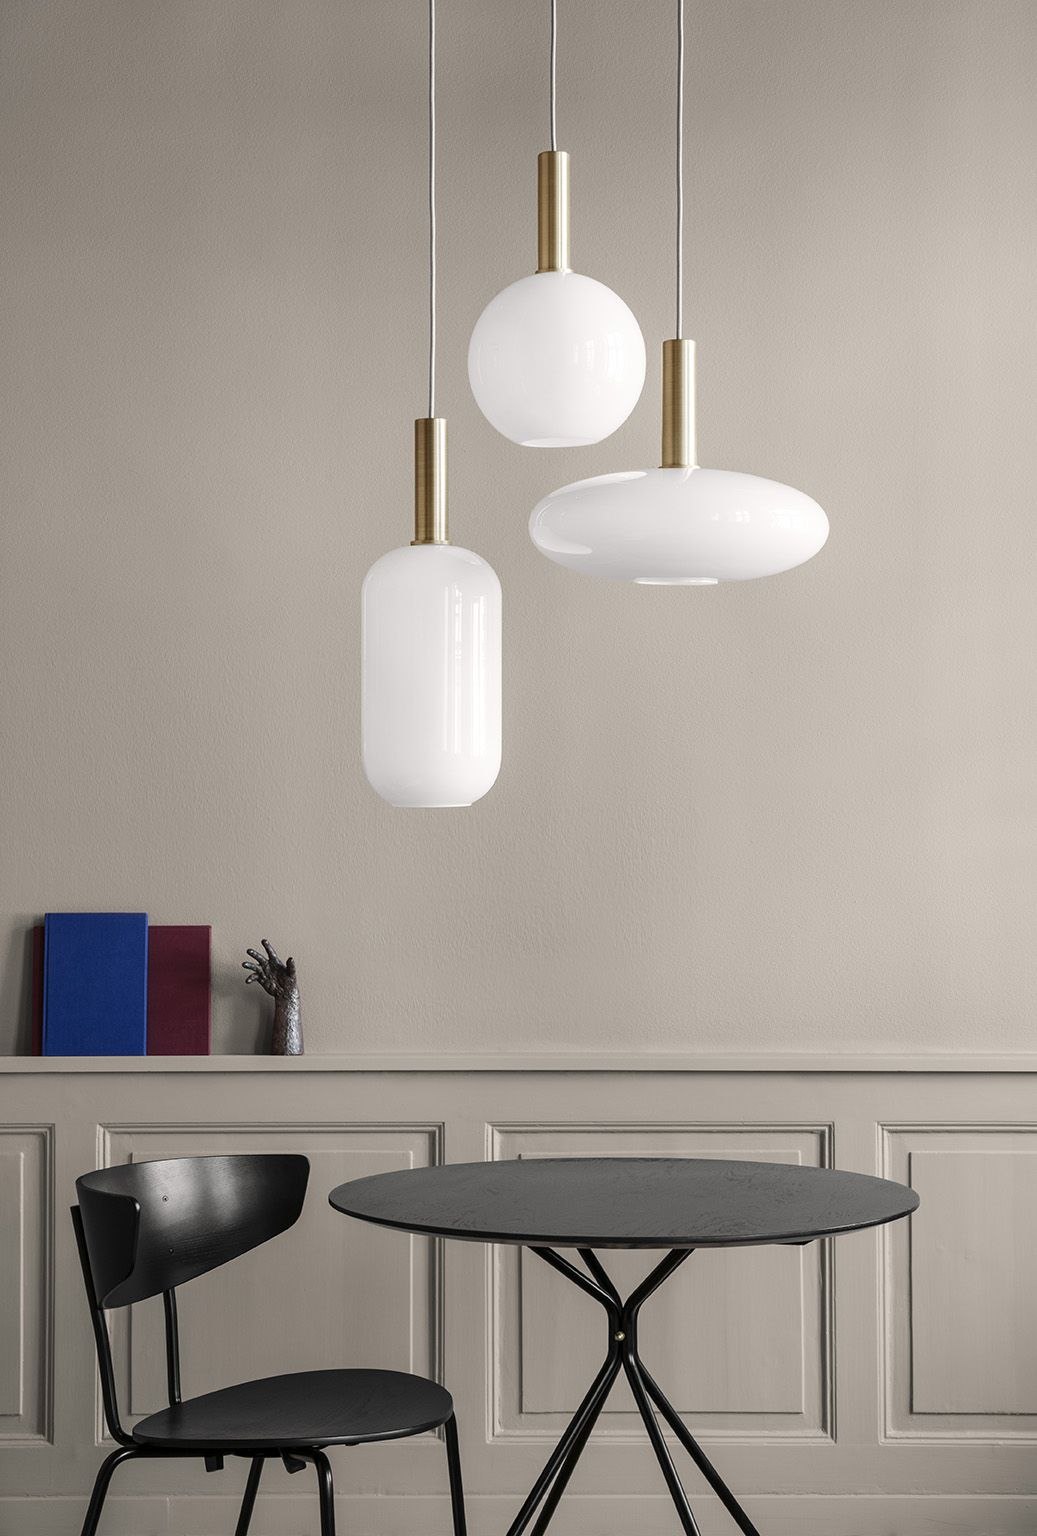 Design Lampen Lamps From Ferm Living Extraordinary Lighting Vintage Lamps